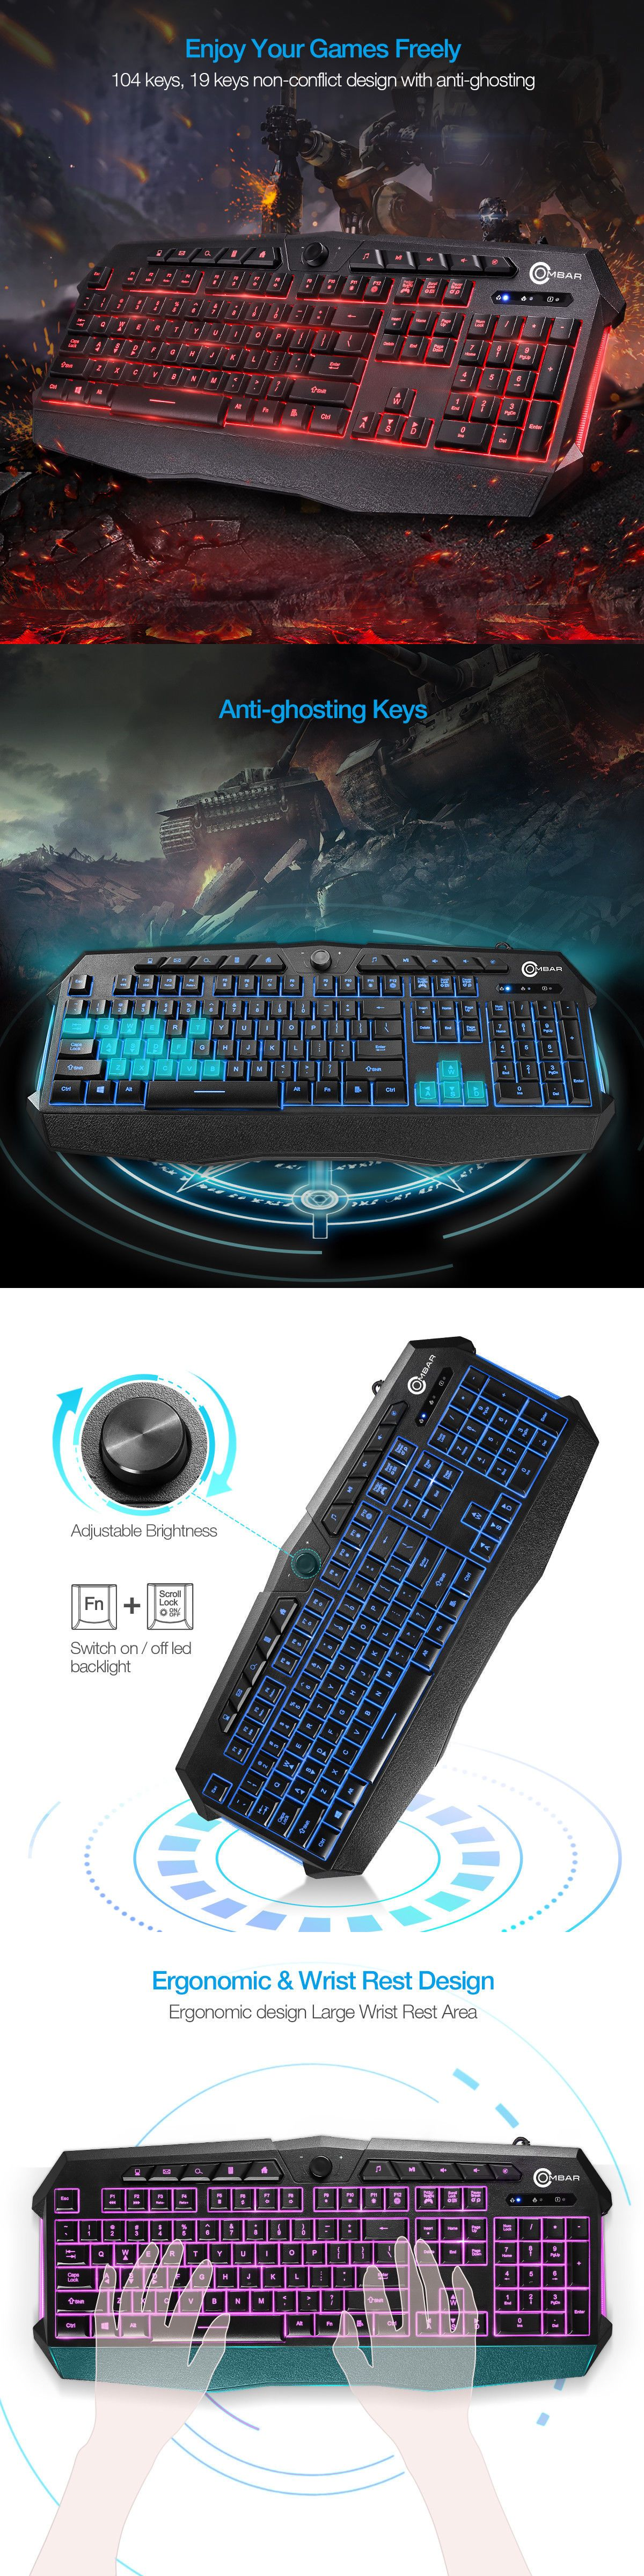 7d833b285dd Keyboard and Mouse Bundles 47779: Backlit Gaming Keyboard Adjustable 3  Colors Led Light Gamer Usb Wired Keyboard -> BUY IT NOW ONLY: $20.99 on  #eBay ...